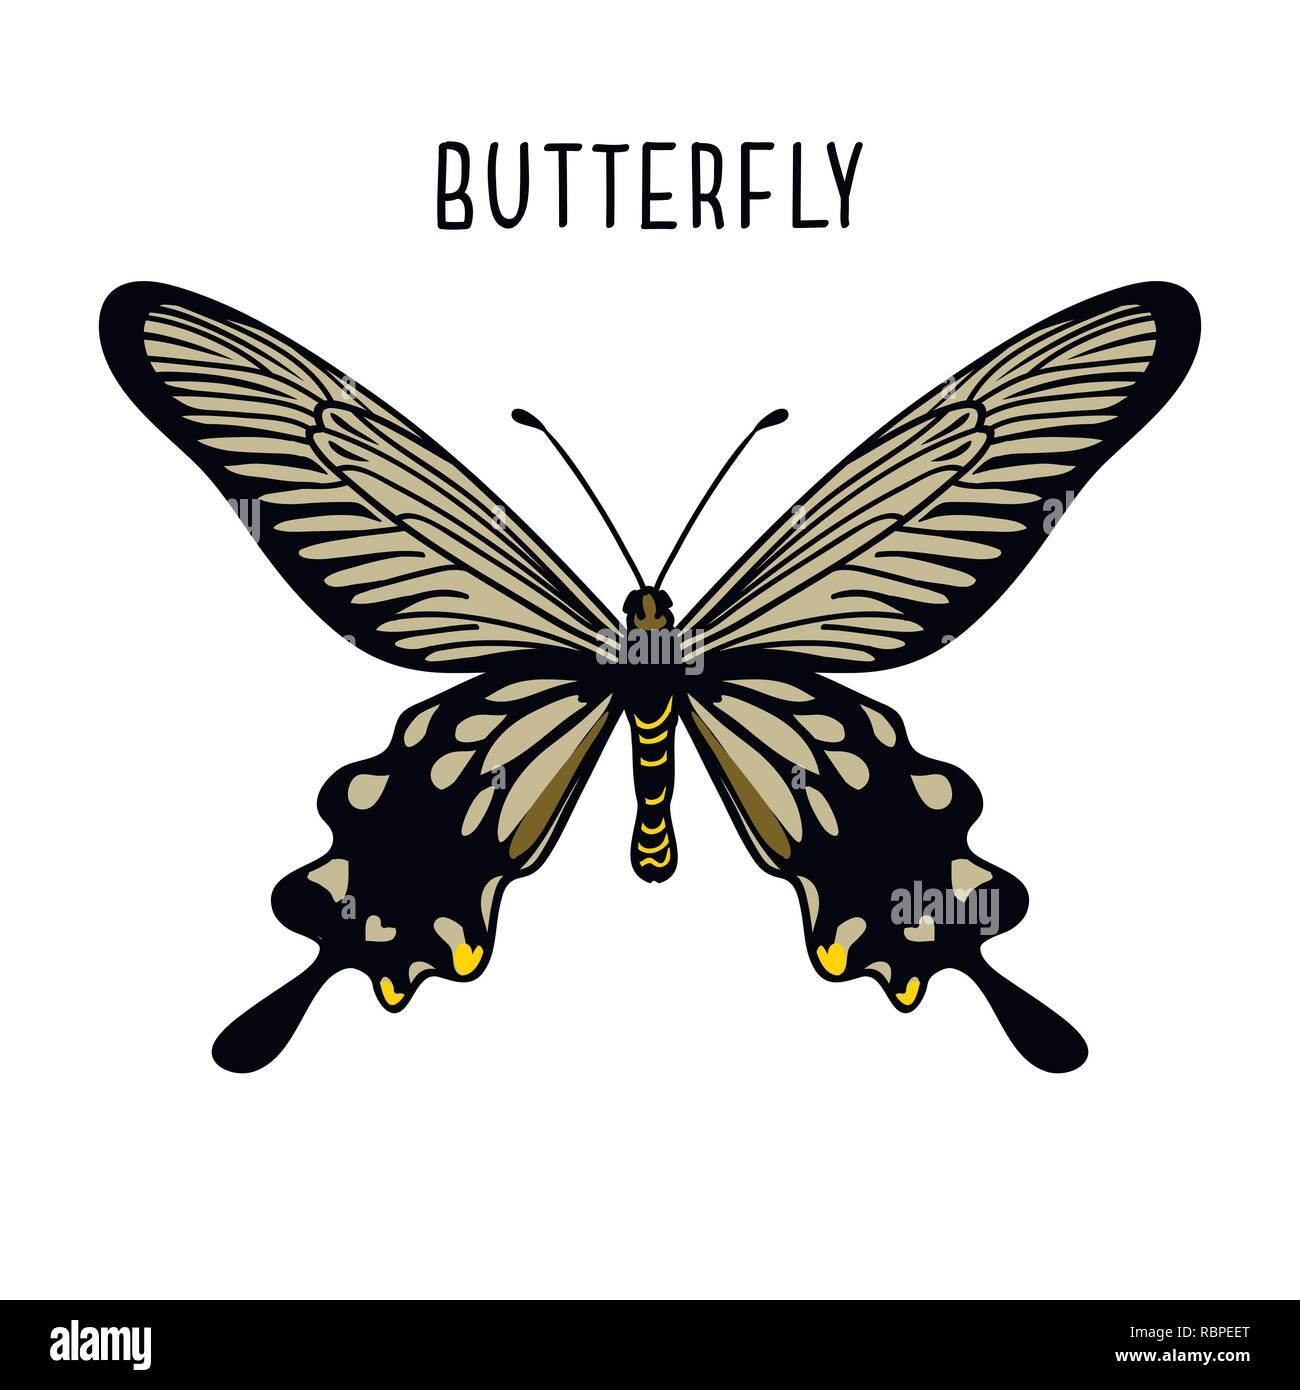 Monochrome black butterfly. Graphic icon of butterfly. Black silhouette of butterfly. Butterfly isolated on white background - Stock Vector